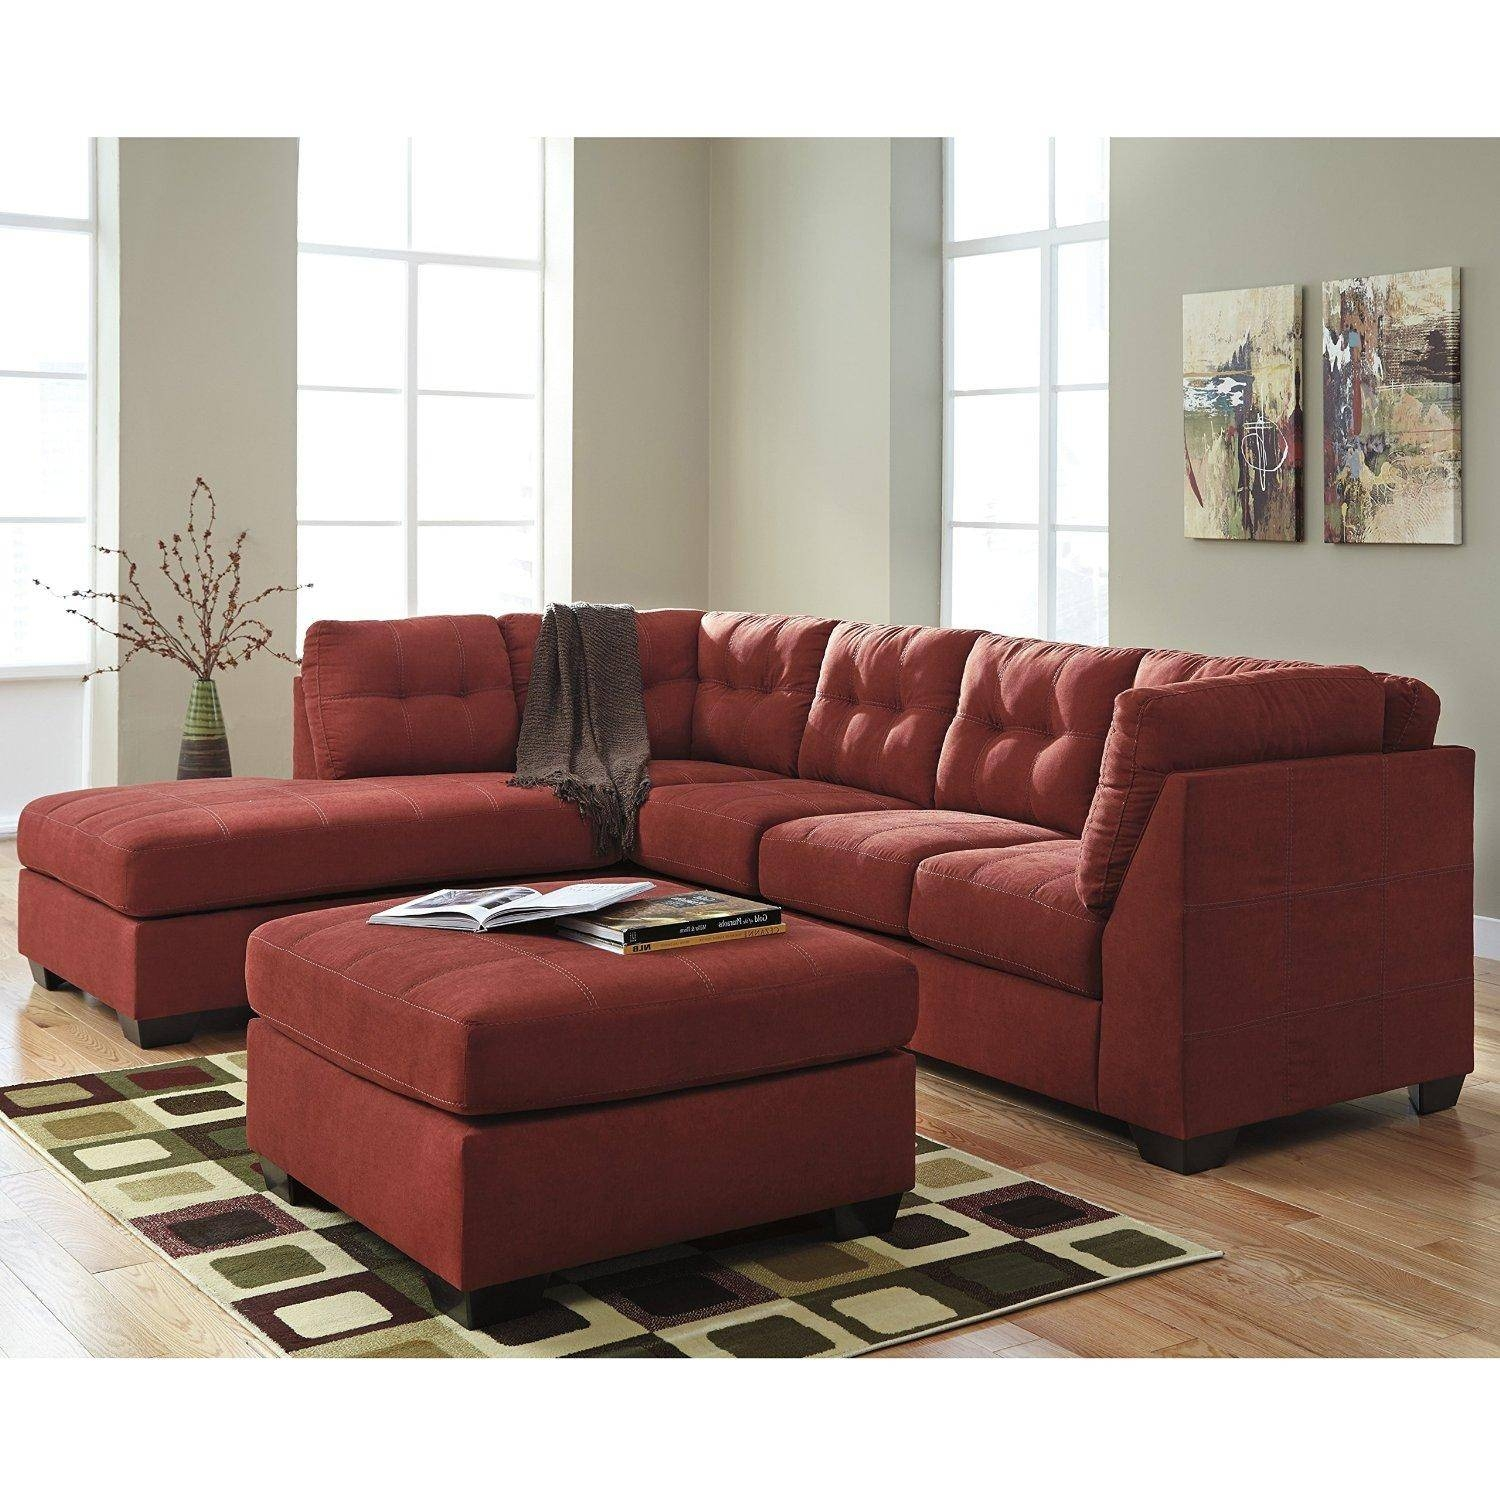 15 Photos Berkline Sectional Sofa | Sofa Ideas with regard to Berkline Sectional Sofas (Image 5 of 15)